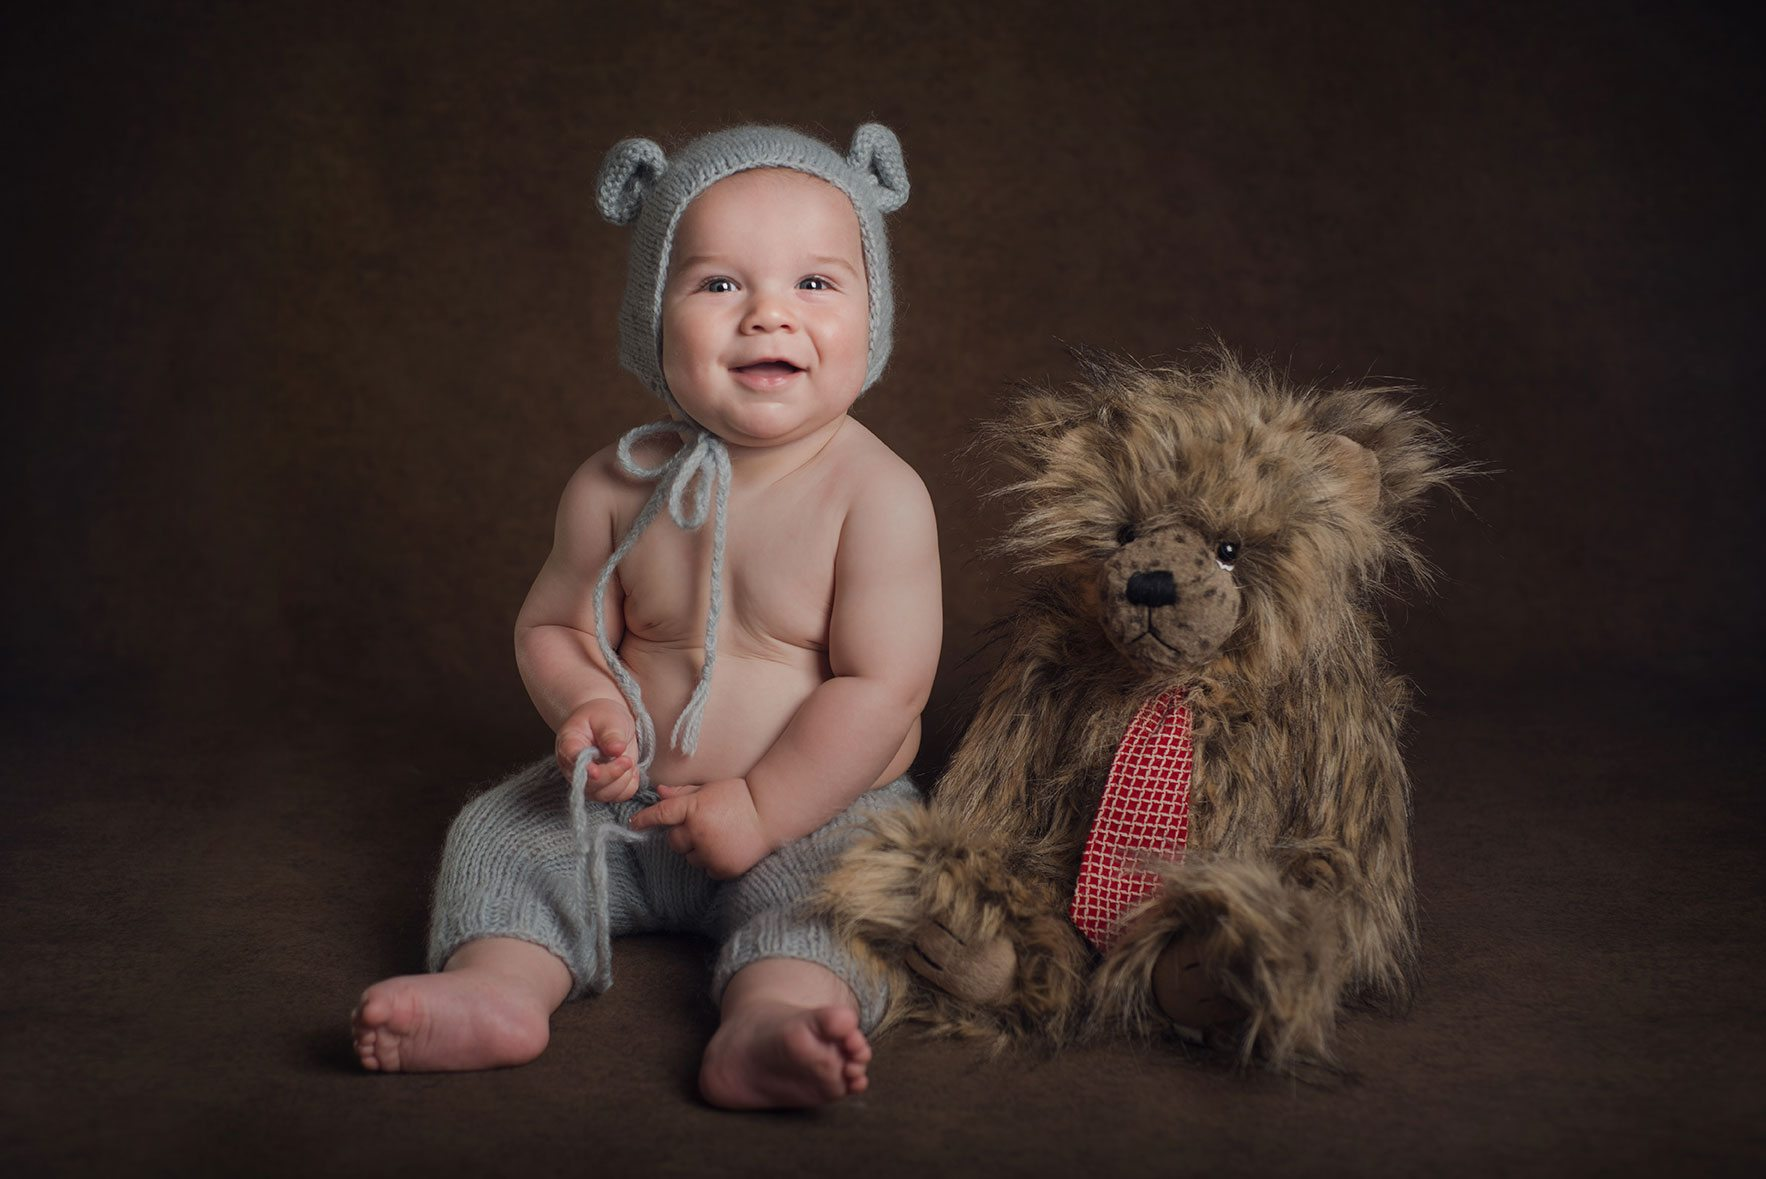 6-month-old-sitting-in-a-bear-hat-with-a-teddy-bear—Essex-child-photographer 524ab73e08b